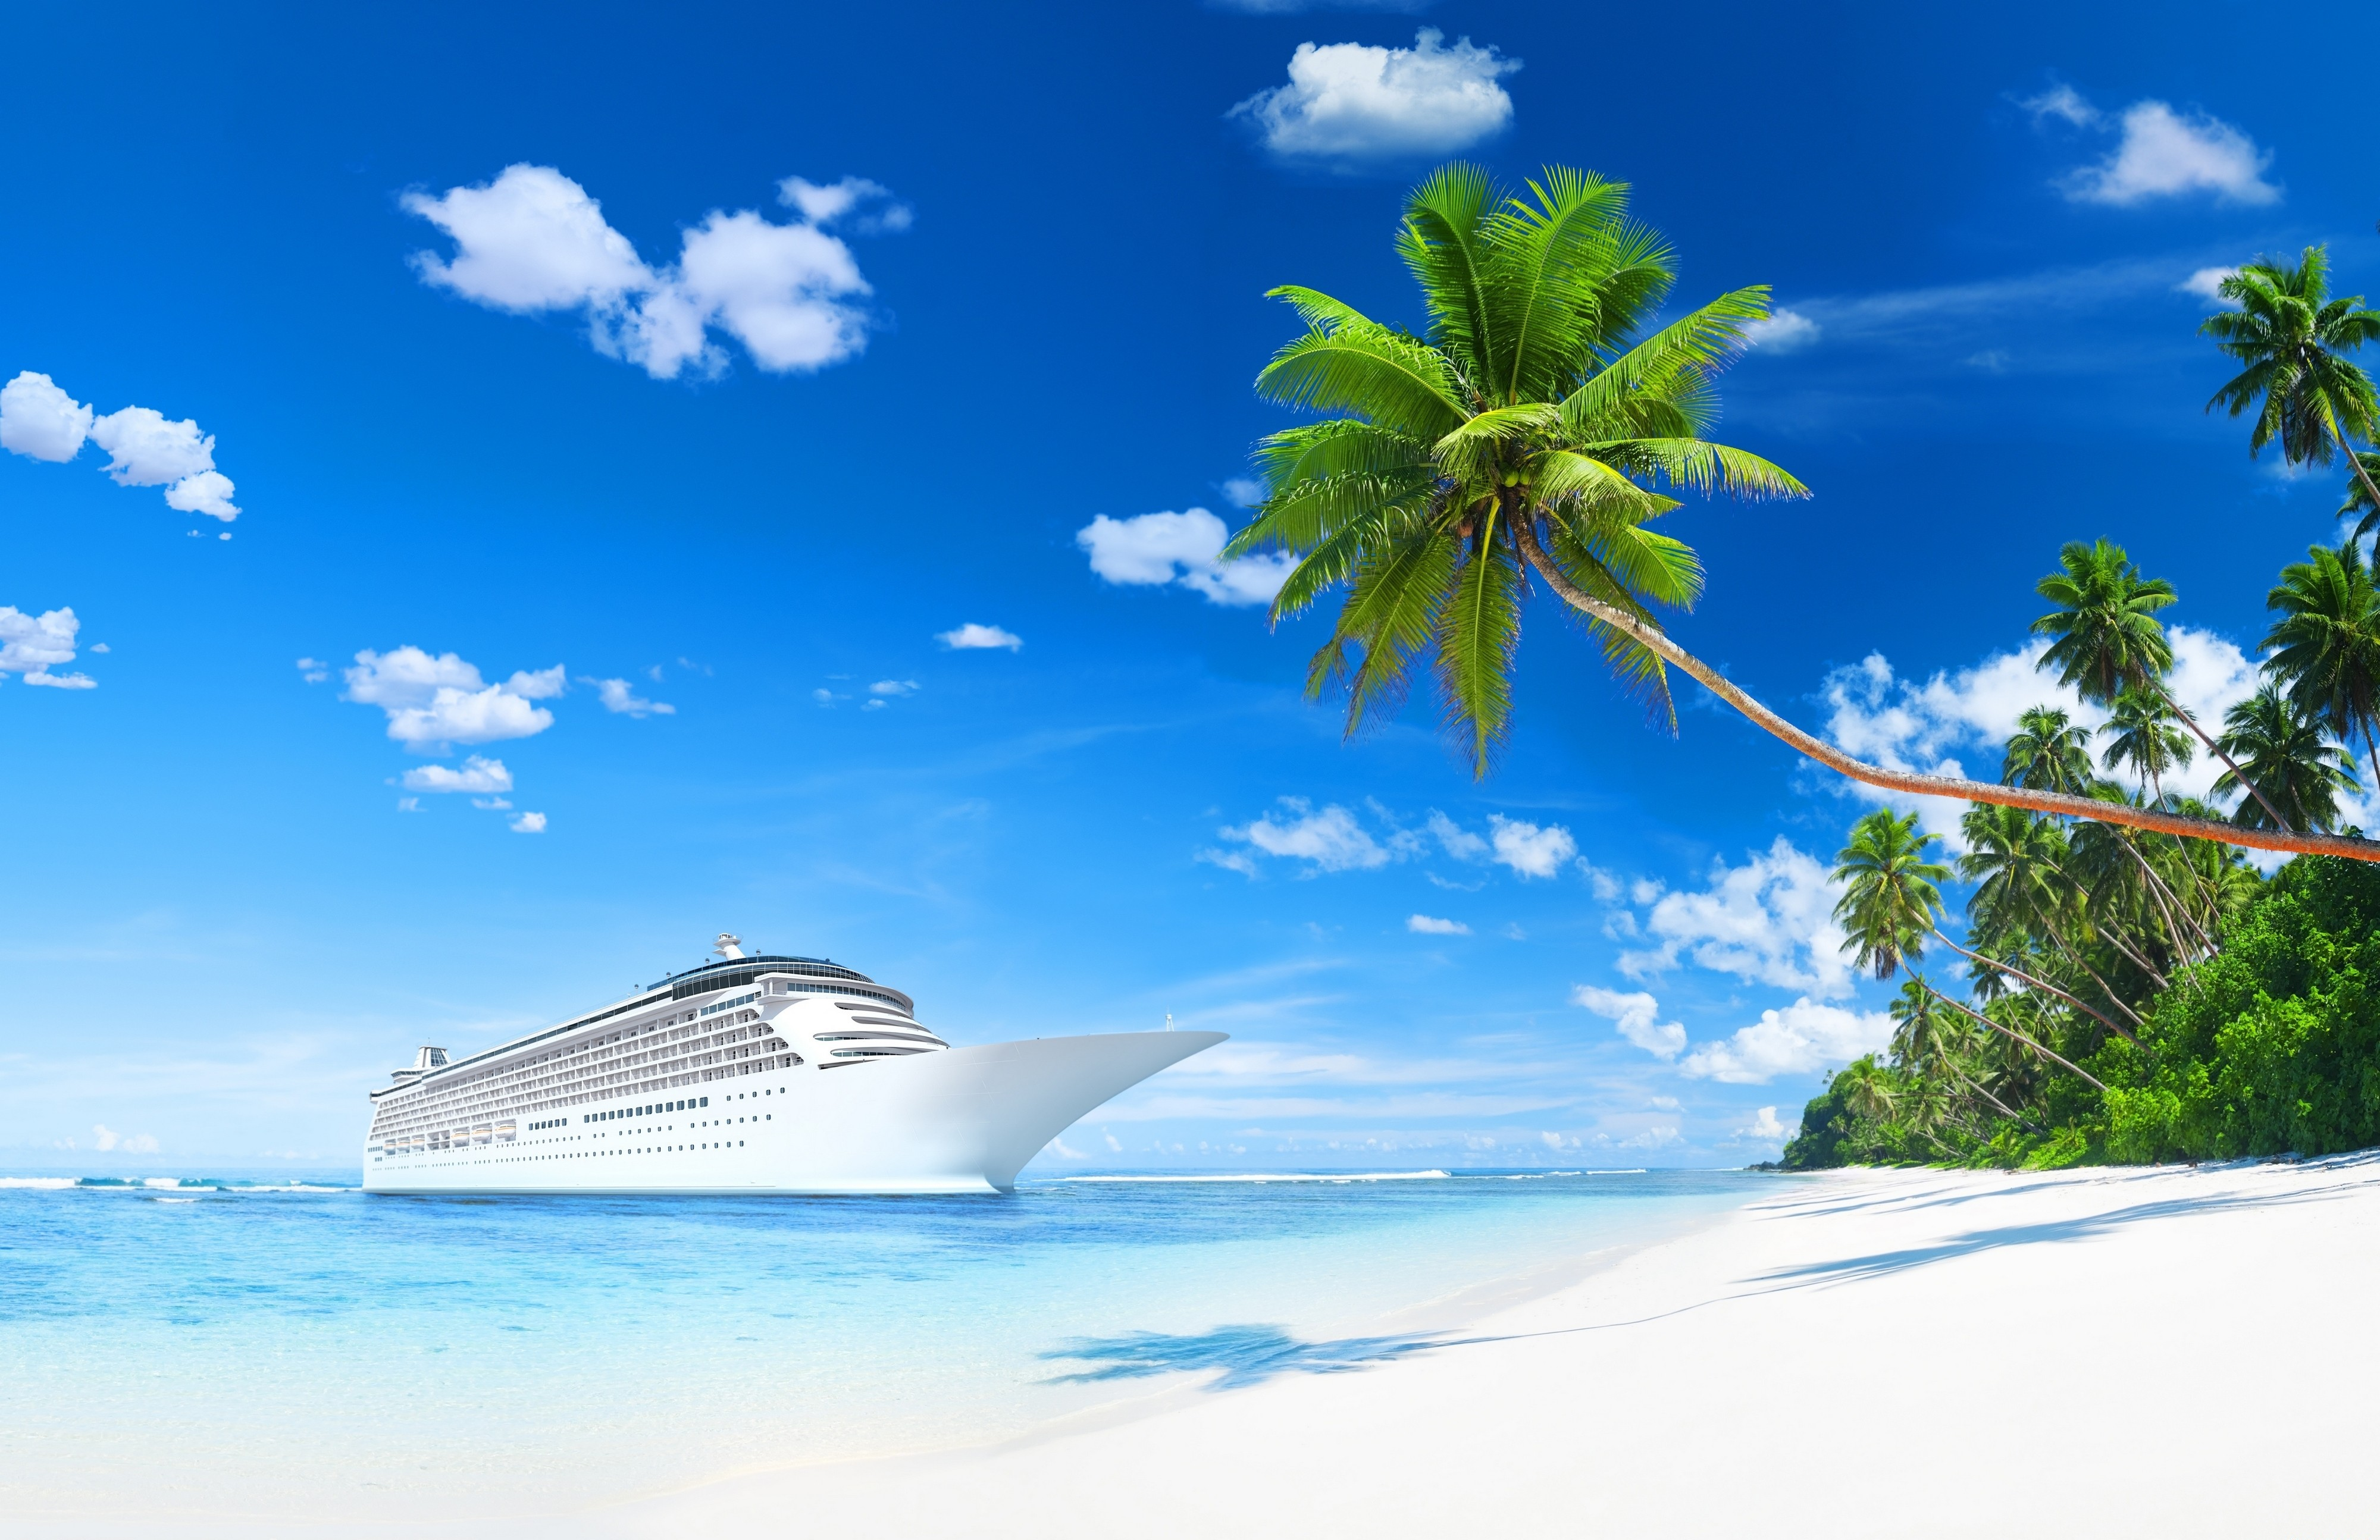 Cruise Ship Wallpapers Pictures Images